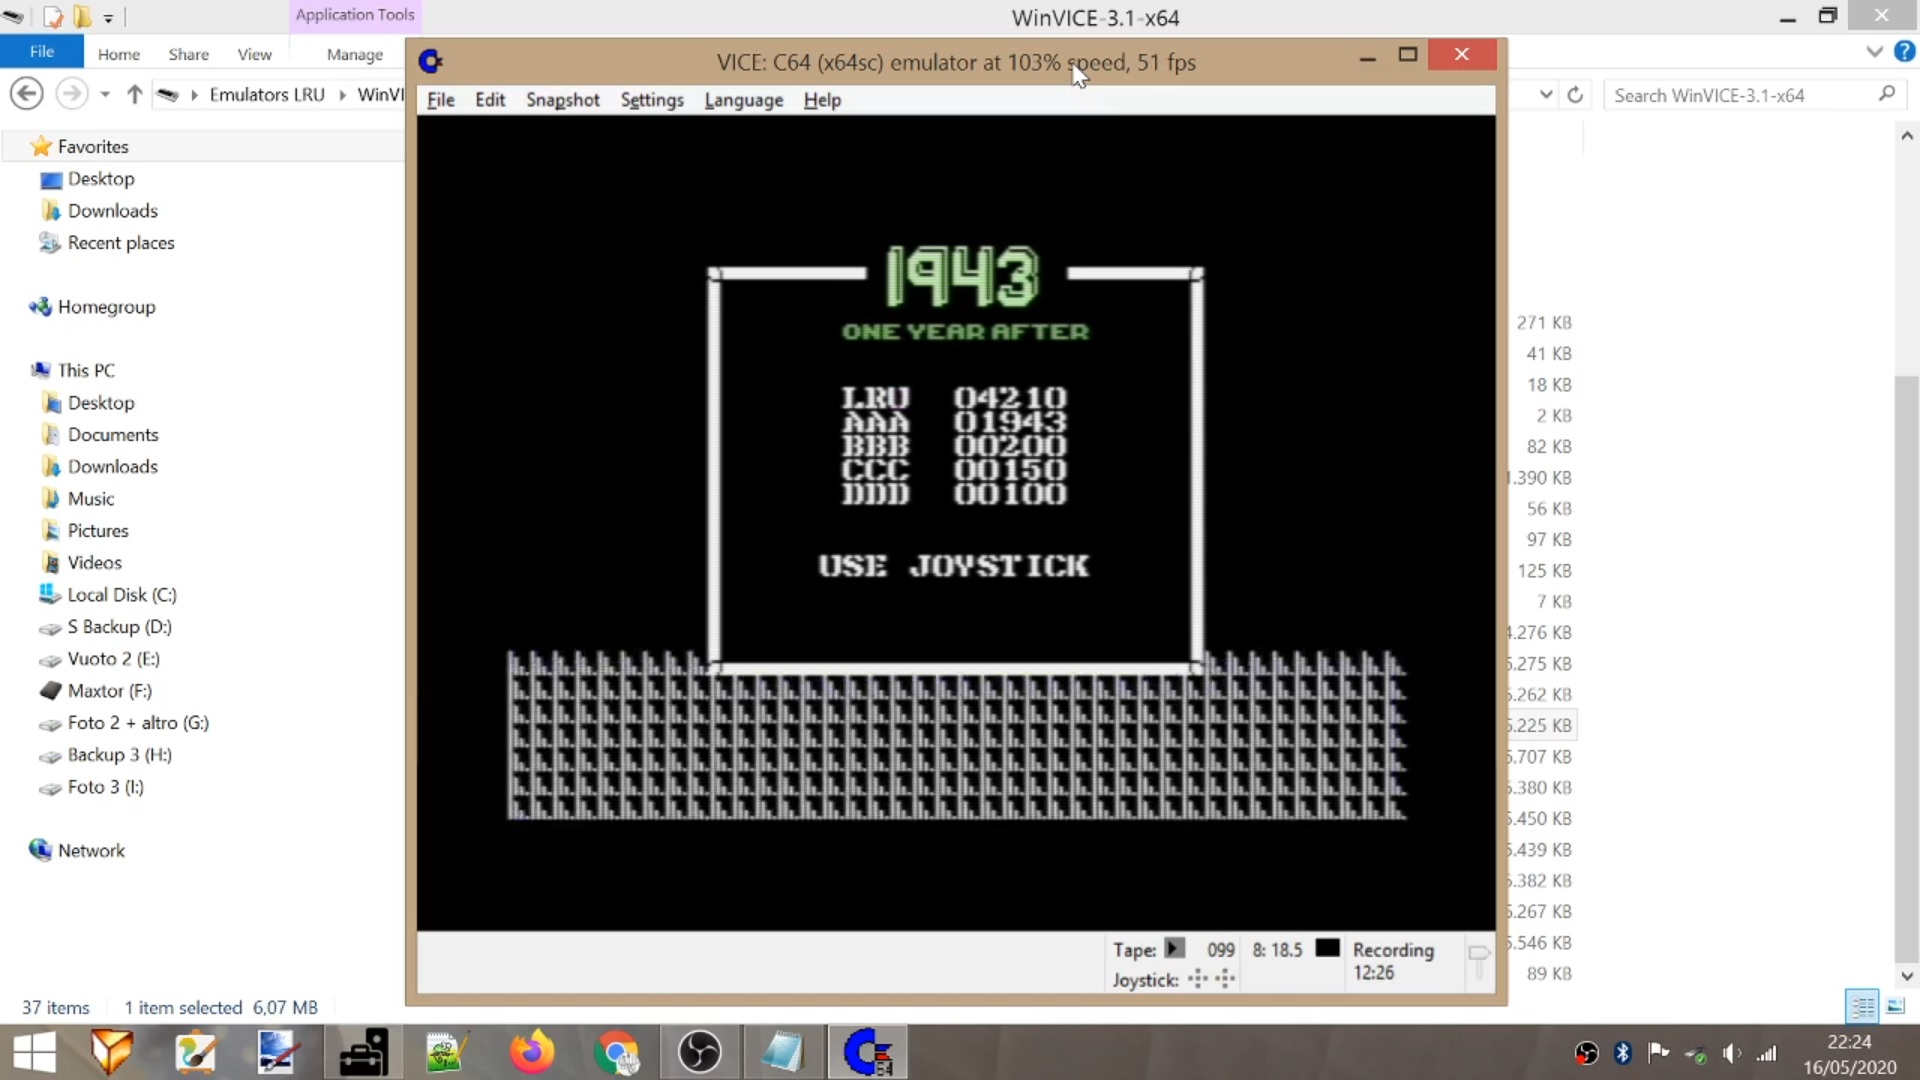 LuigiRuffolo: 1943: One Year After (Commodore 64 Emulated) 4,210 points on 2020-05-16 16:43:13